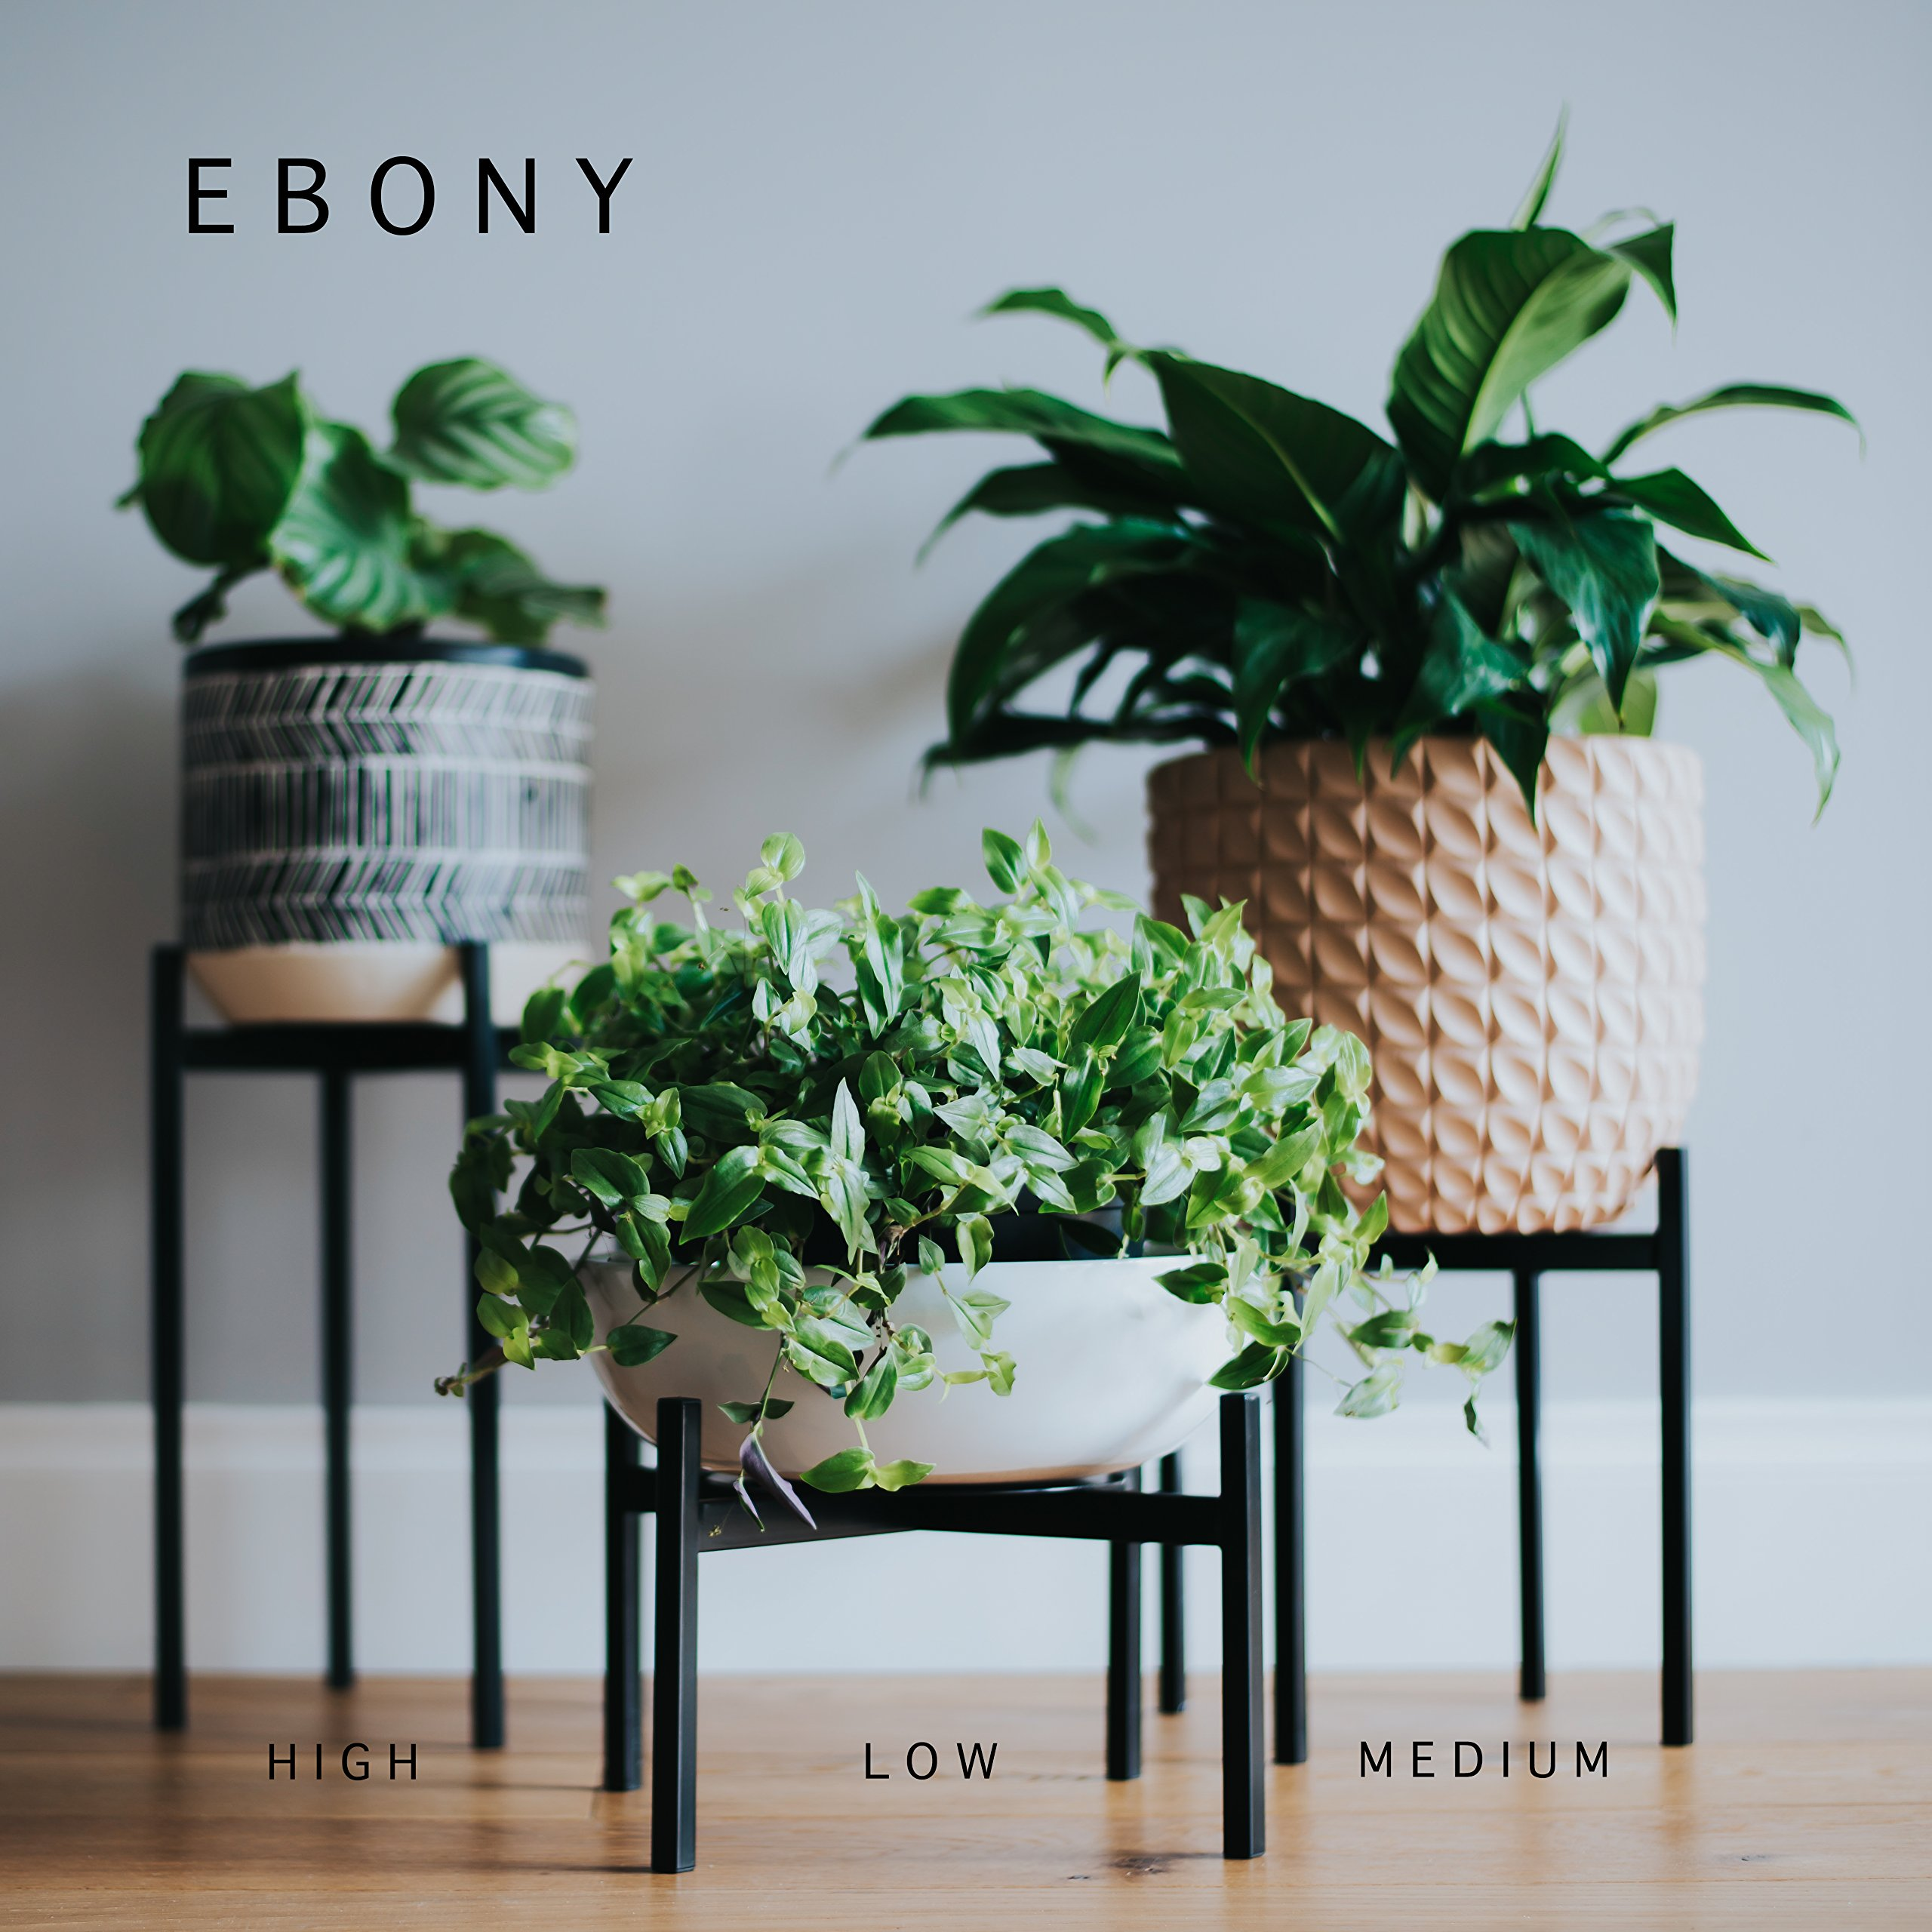 Stylish Plant Stand HIGH (Pot not Included)| Indoor Out Flower Pot Stands | Planter Stand ... & Stylish Plant Stand HIGH (Pot not Included)| Indoor Out Flower Pot ...